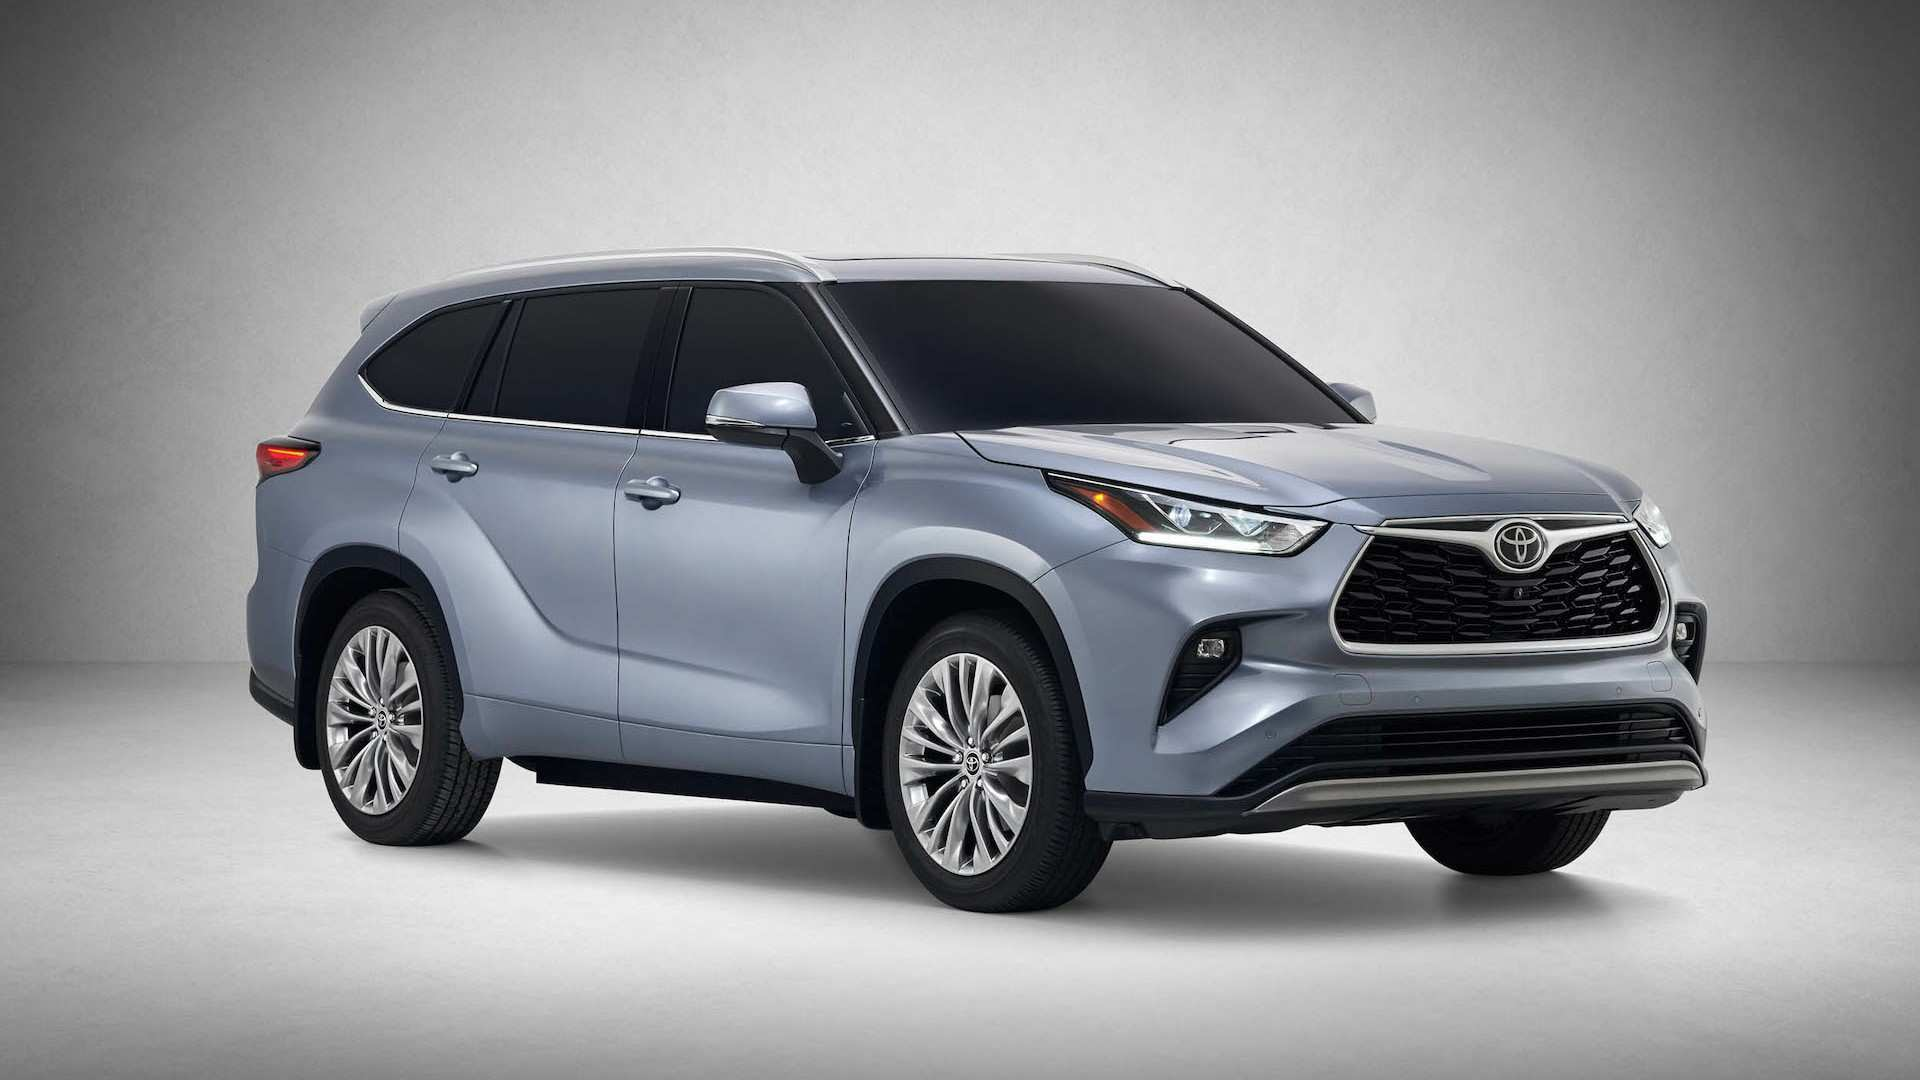 50 All New 2020 Toyota Highlander Hybrid Price